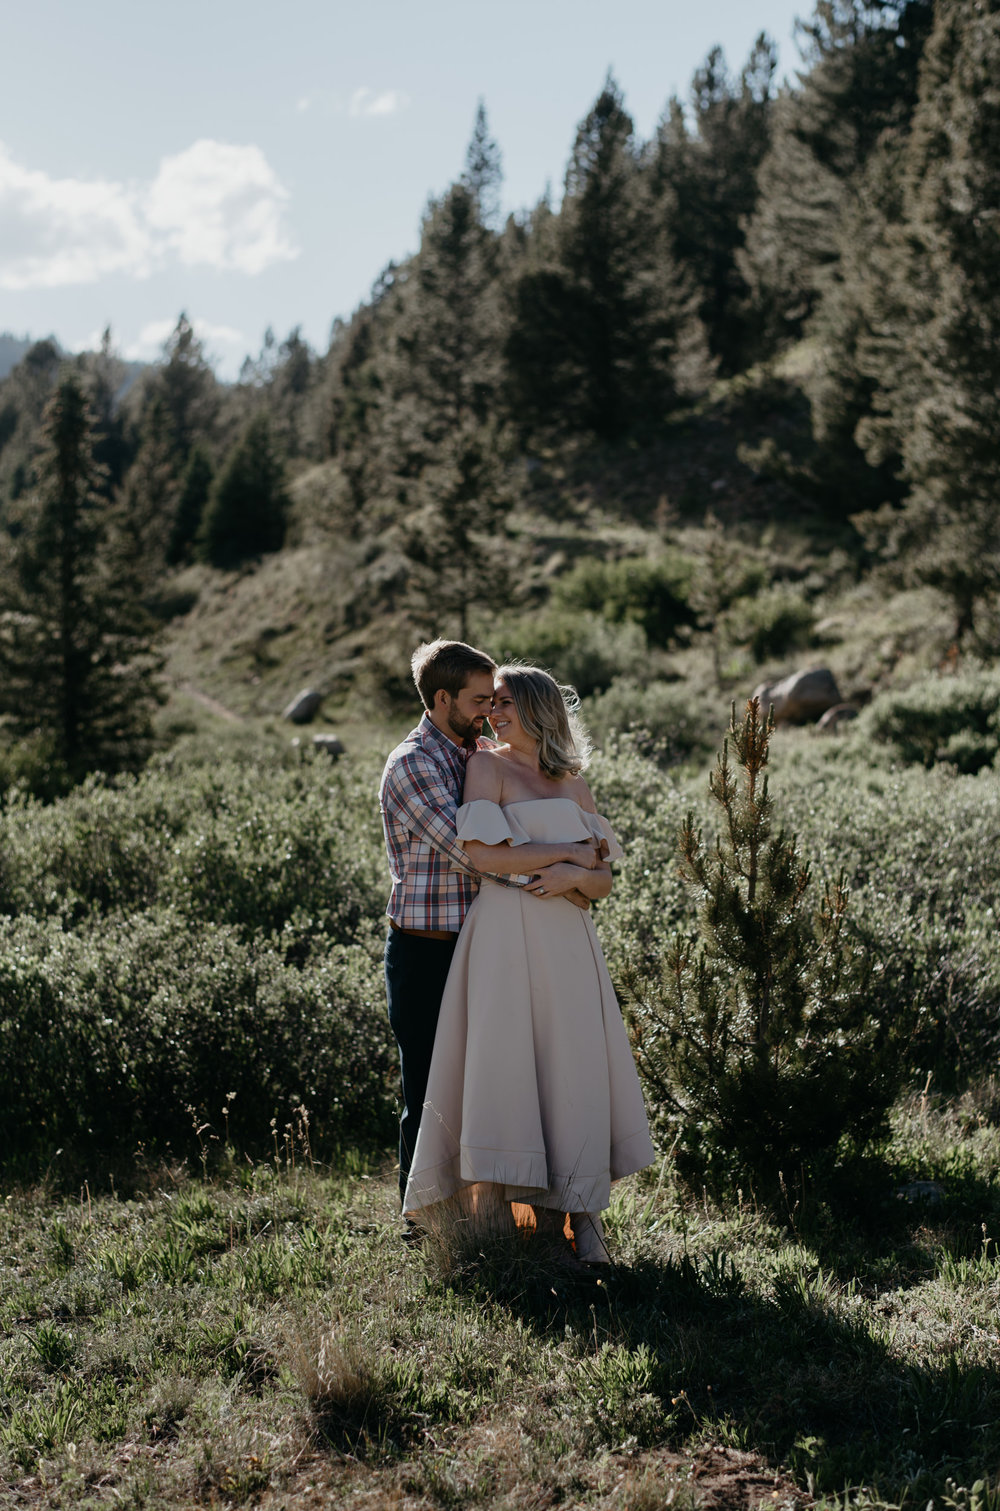 Colorado elopement and wedding photographer. Aspen, CO wedding.